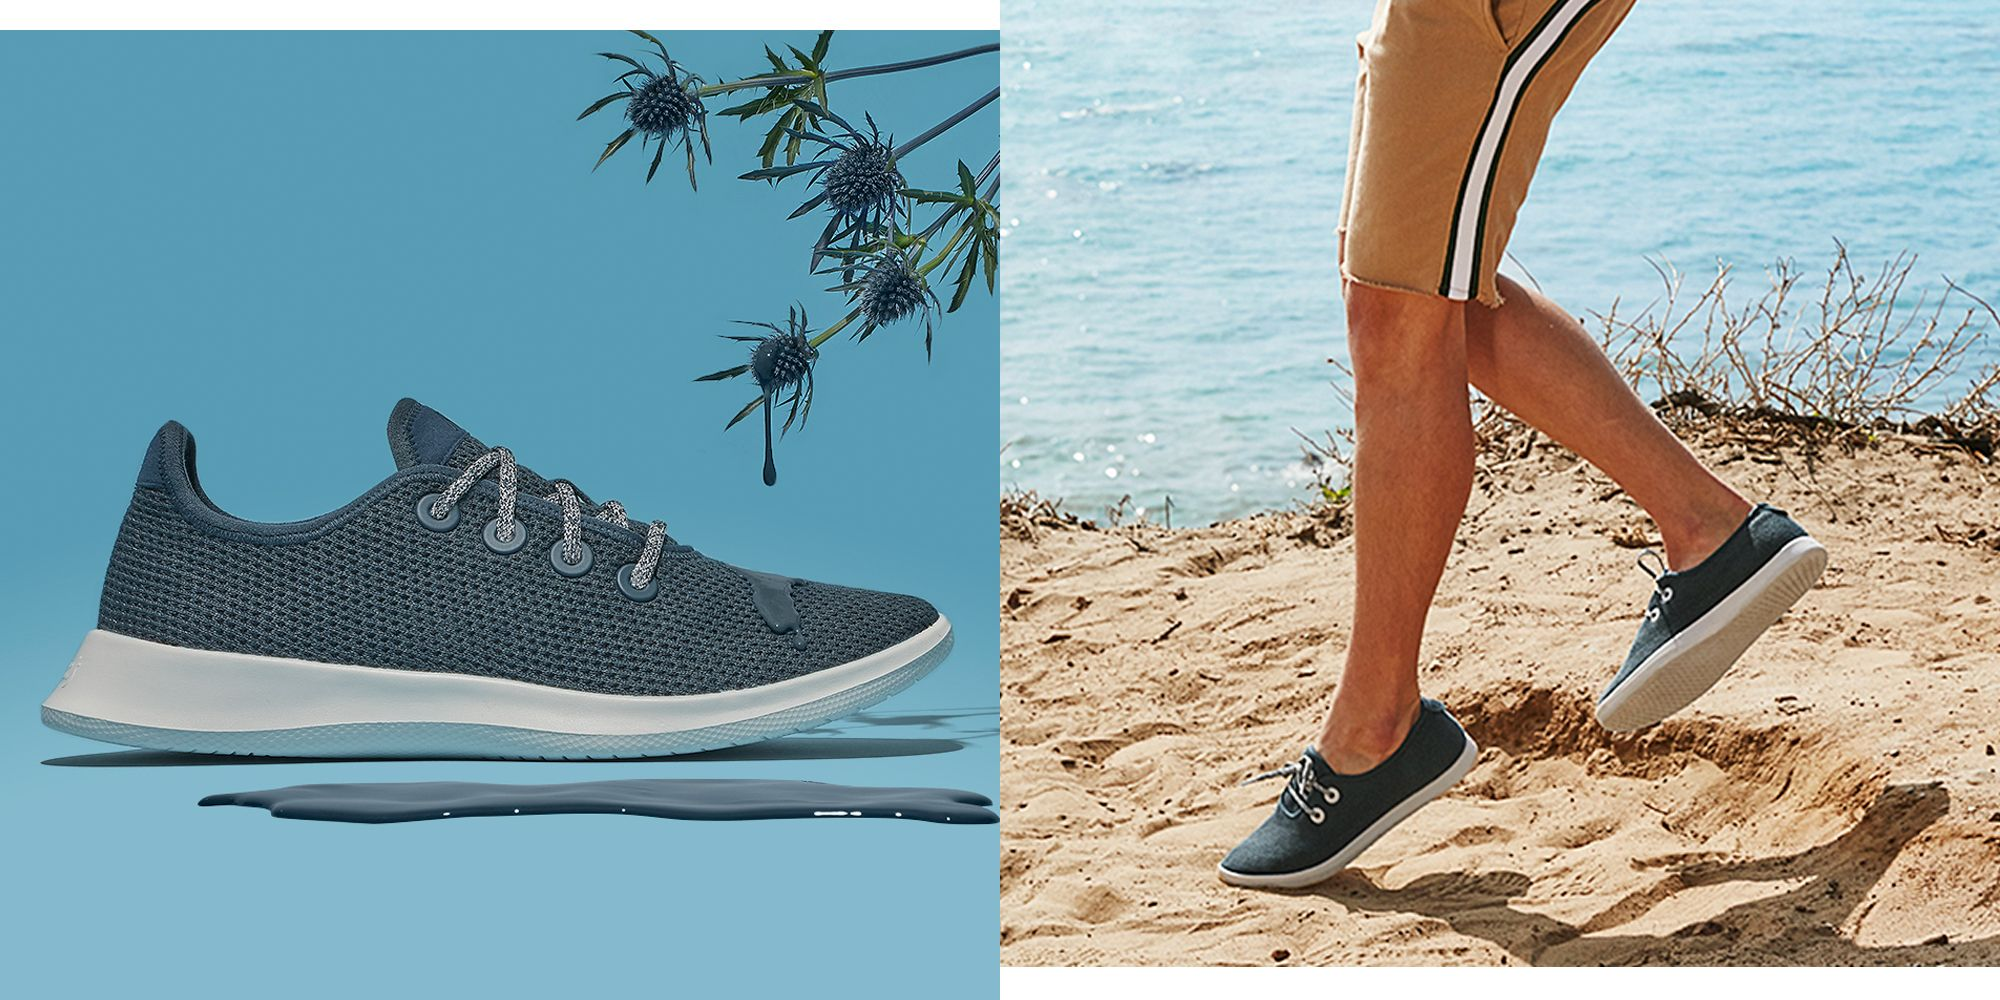 Sneakers Are Made from Eucalyptus Trees